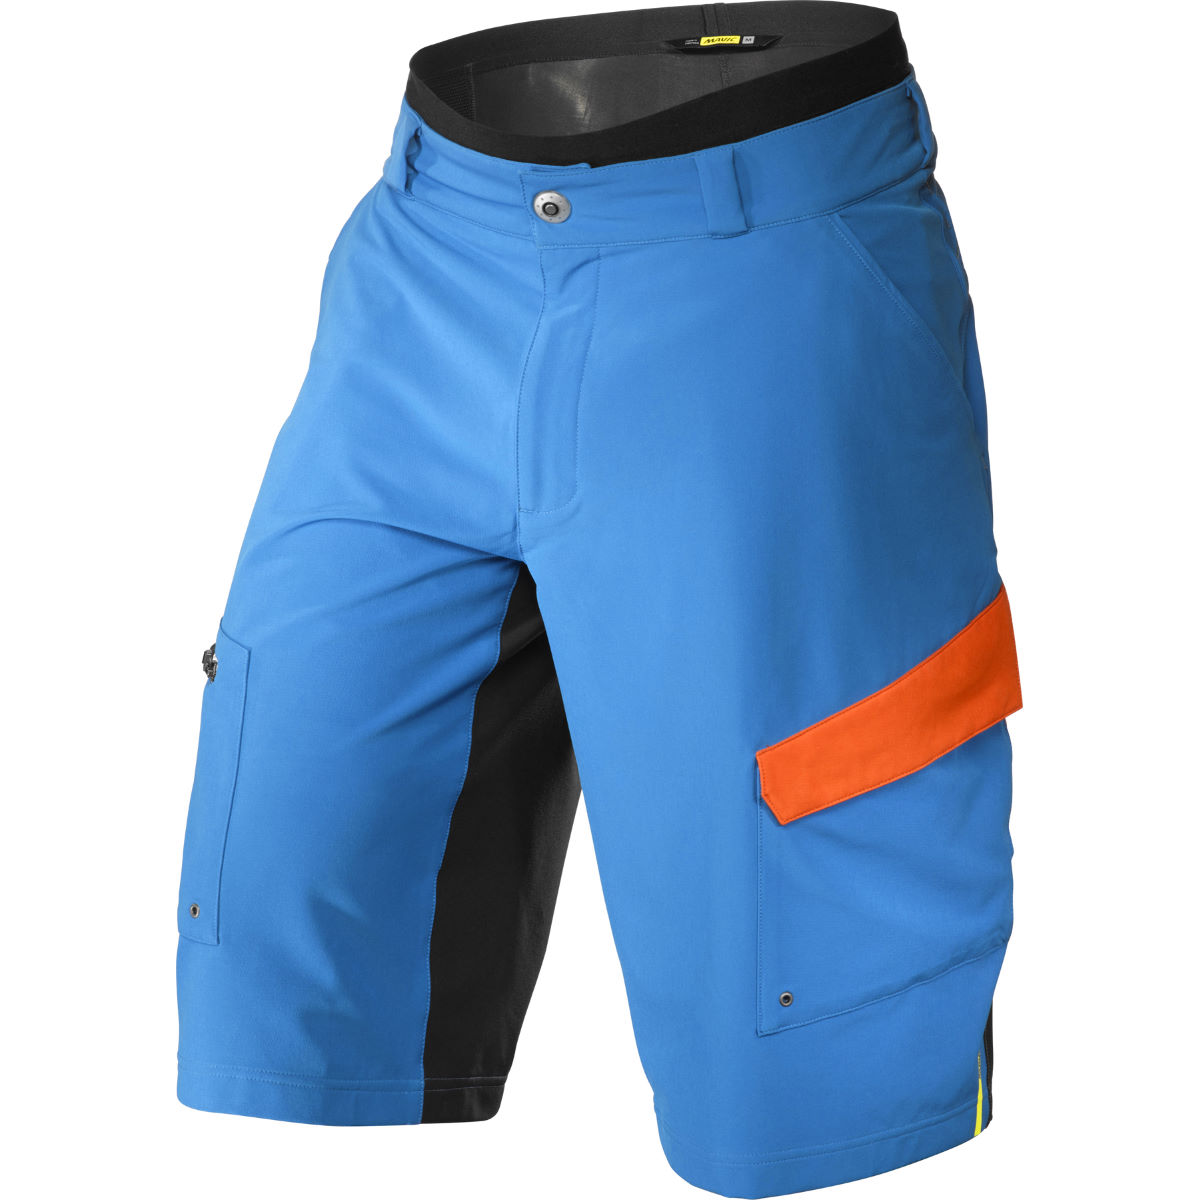 Ensemble short Mavic Crossmax Pro - L Montana/Orange Shorts VTT